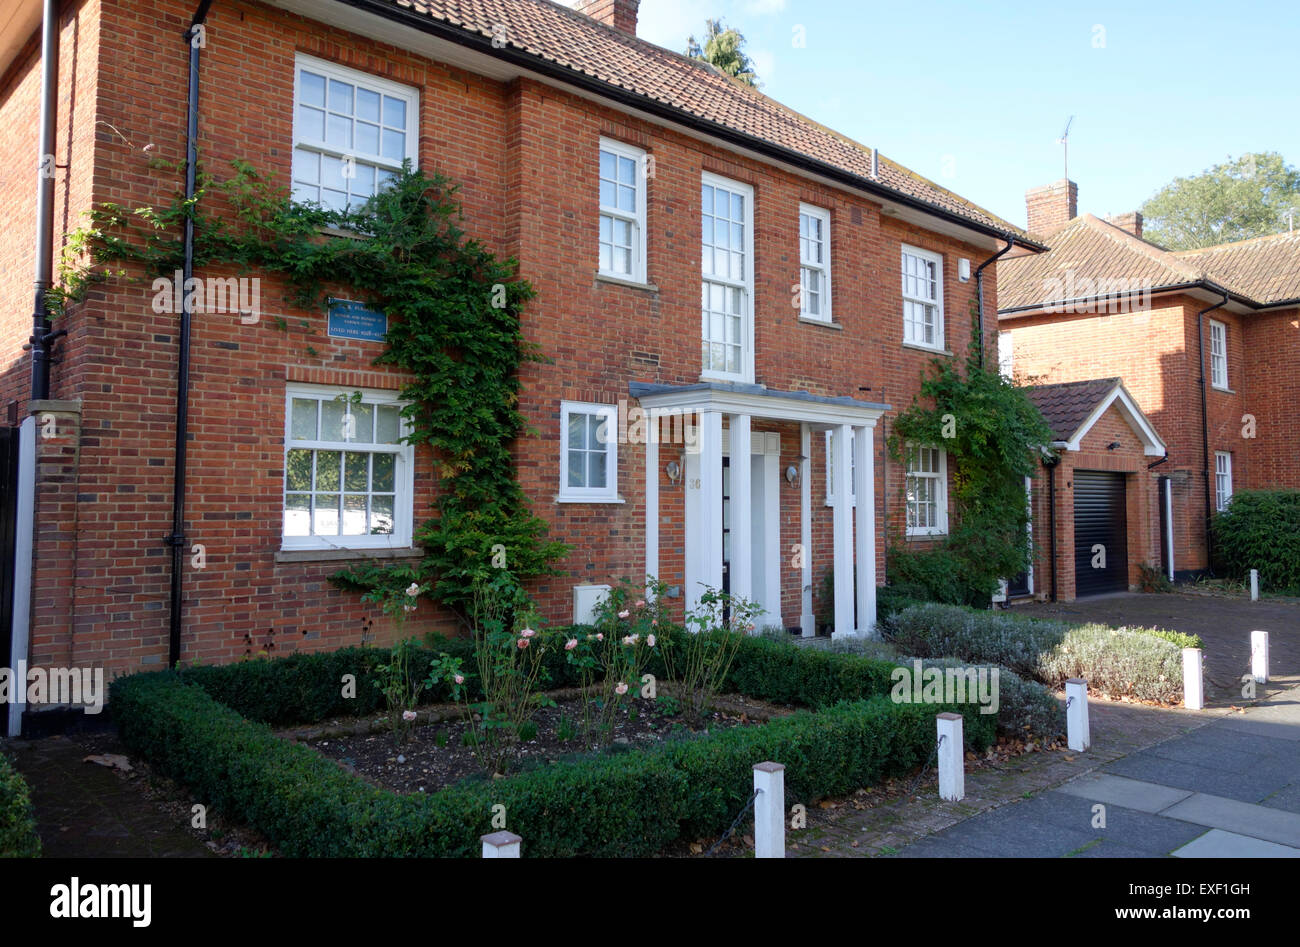 The former home of the author C B Purdom from 1928 - 1938, Welwyn Garden City - Stock Image